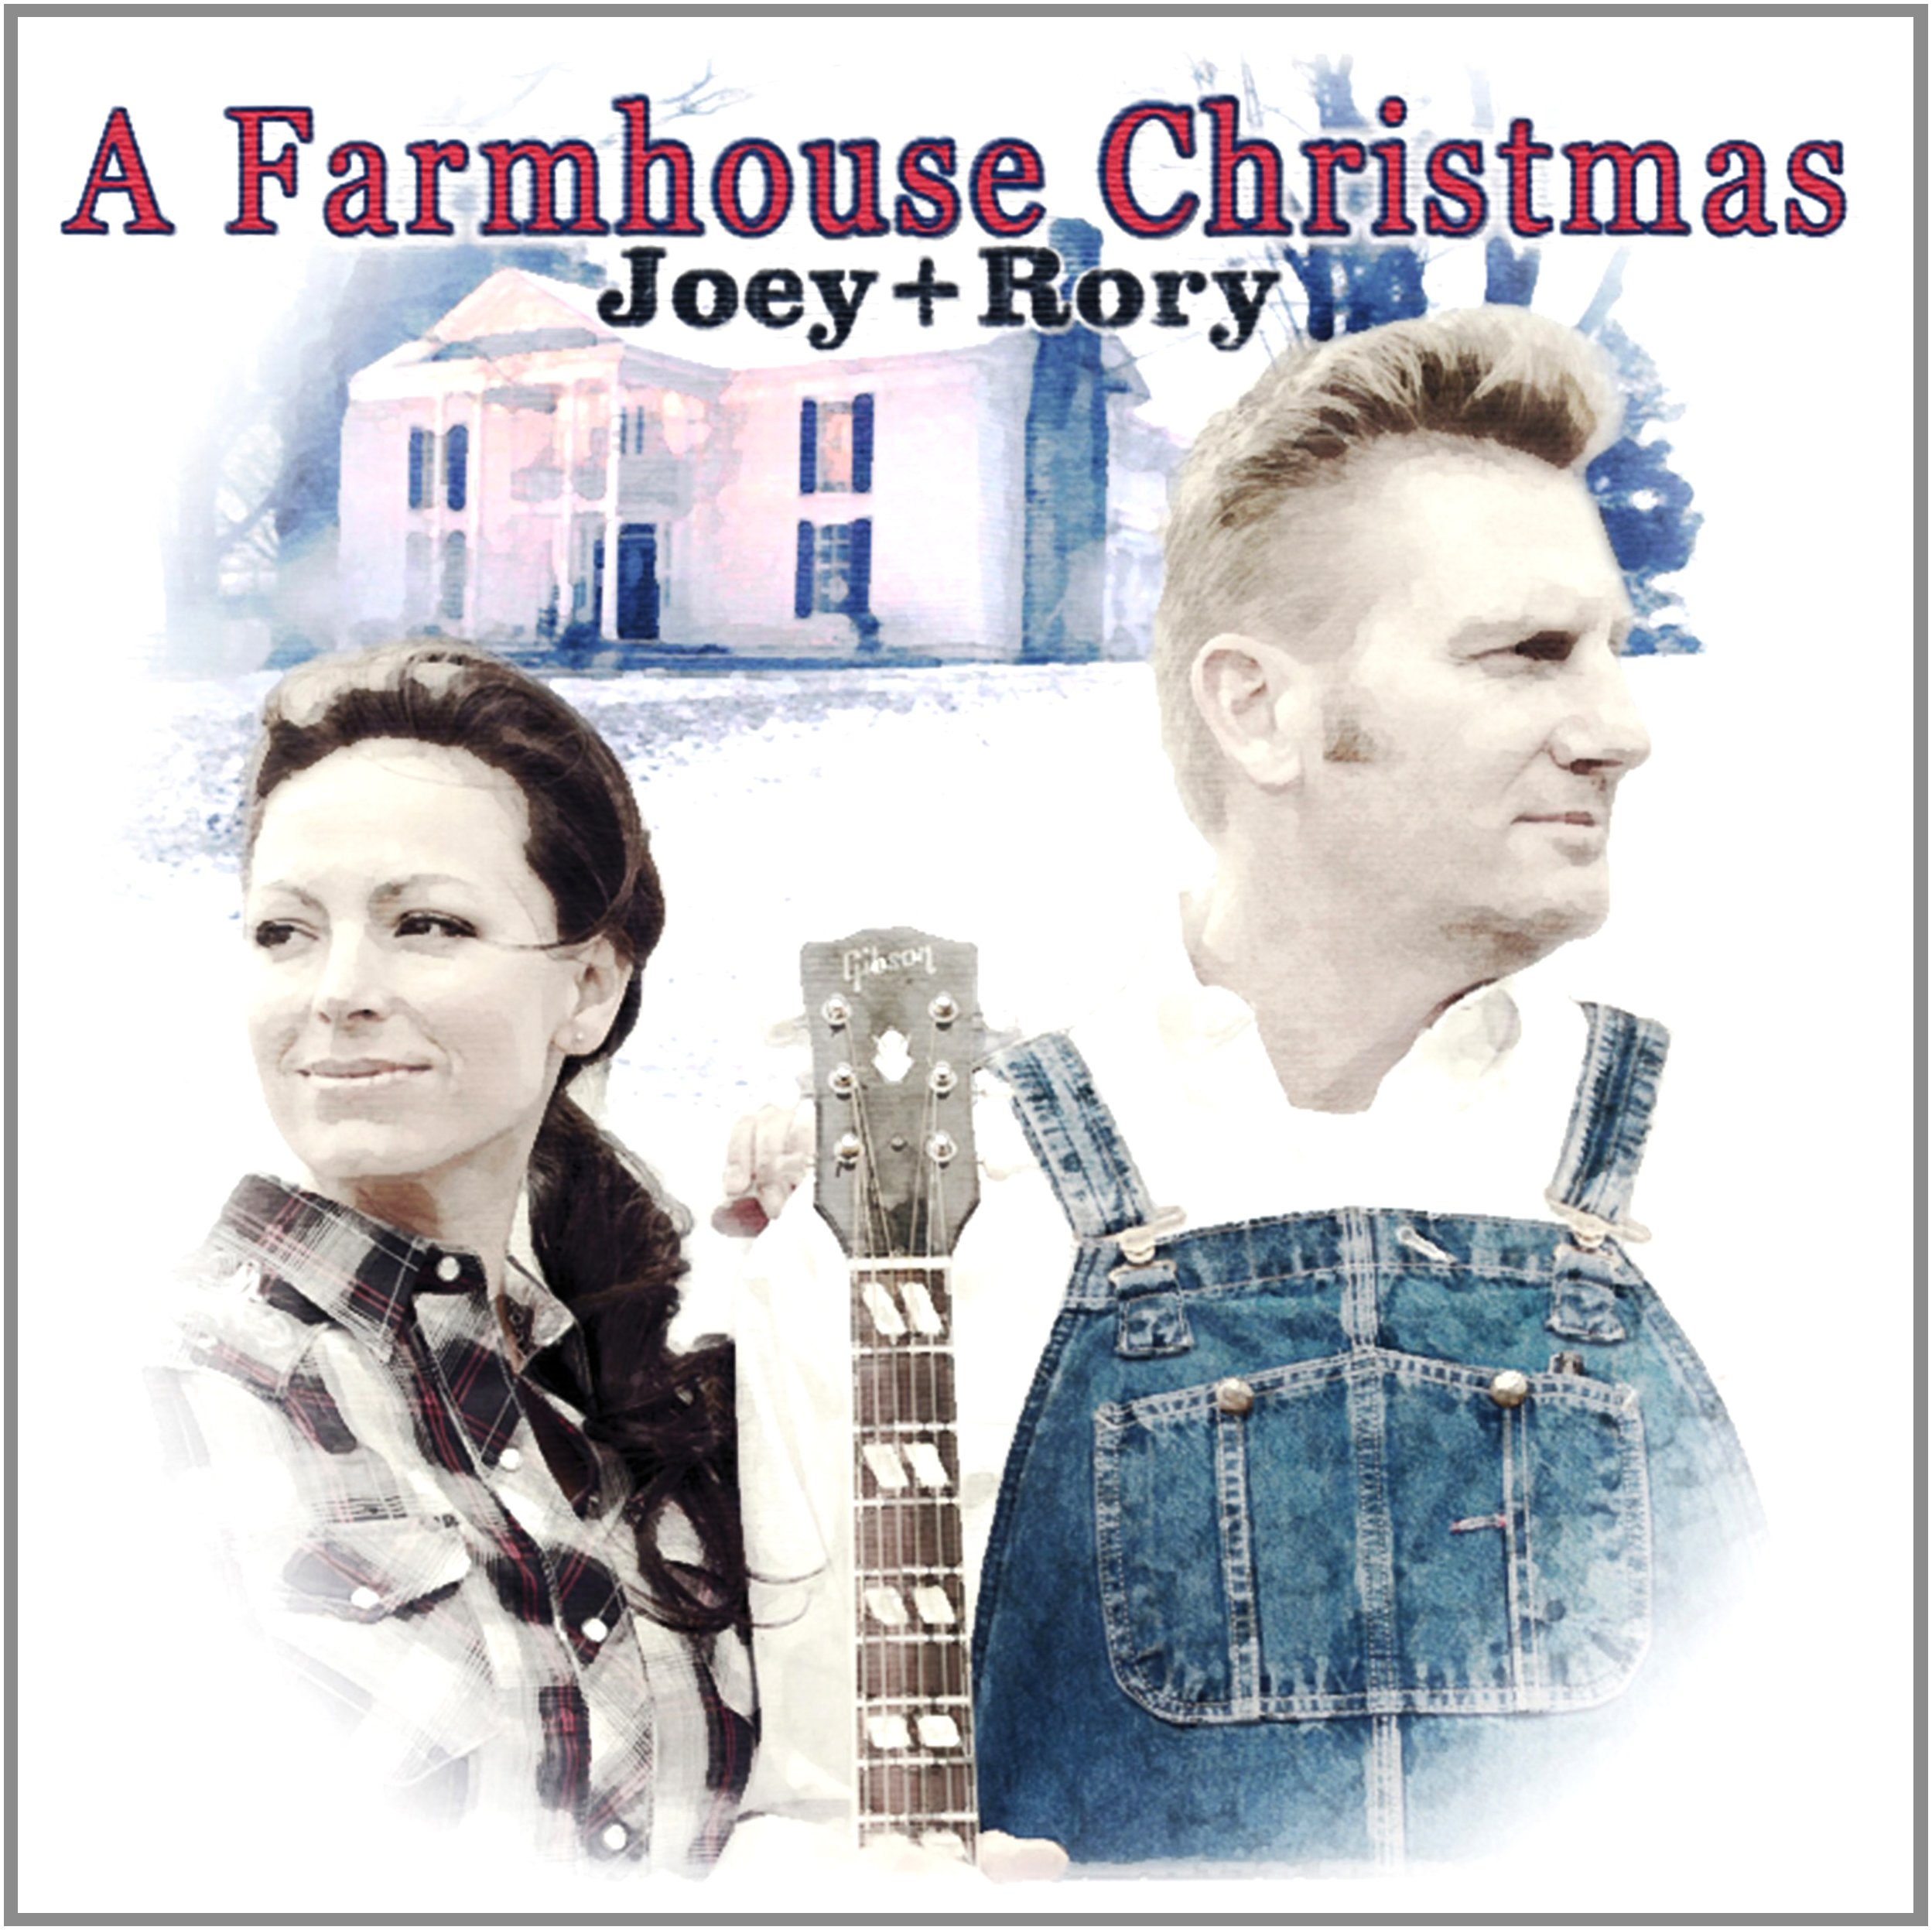 Joey + Rory - A Farmhouse Christmas - Amazon.com Music